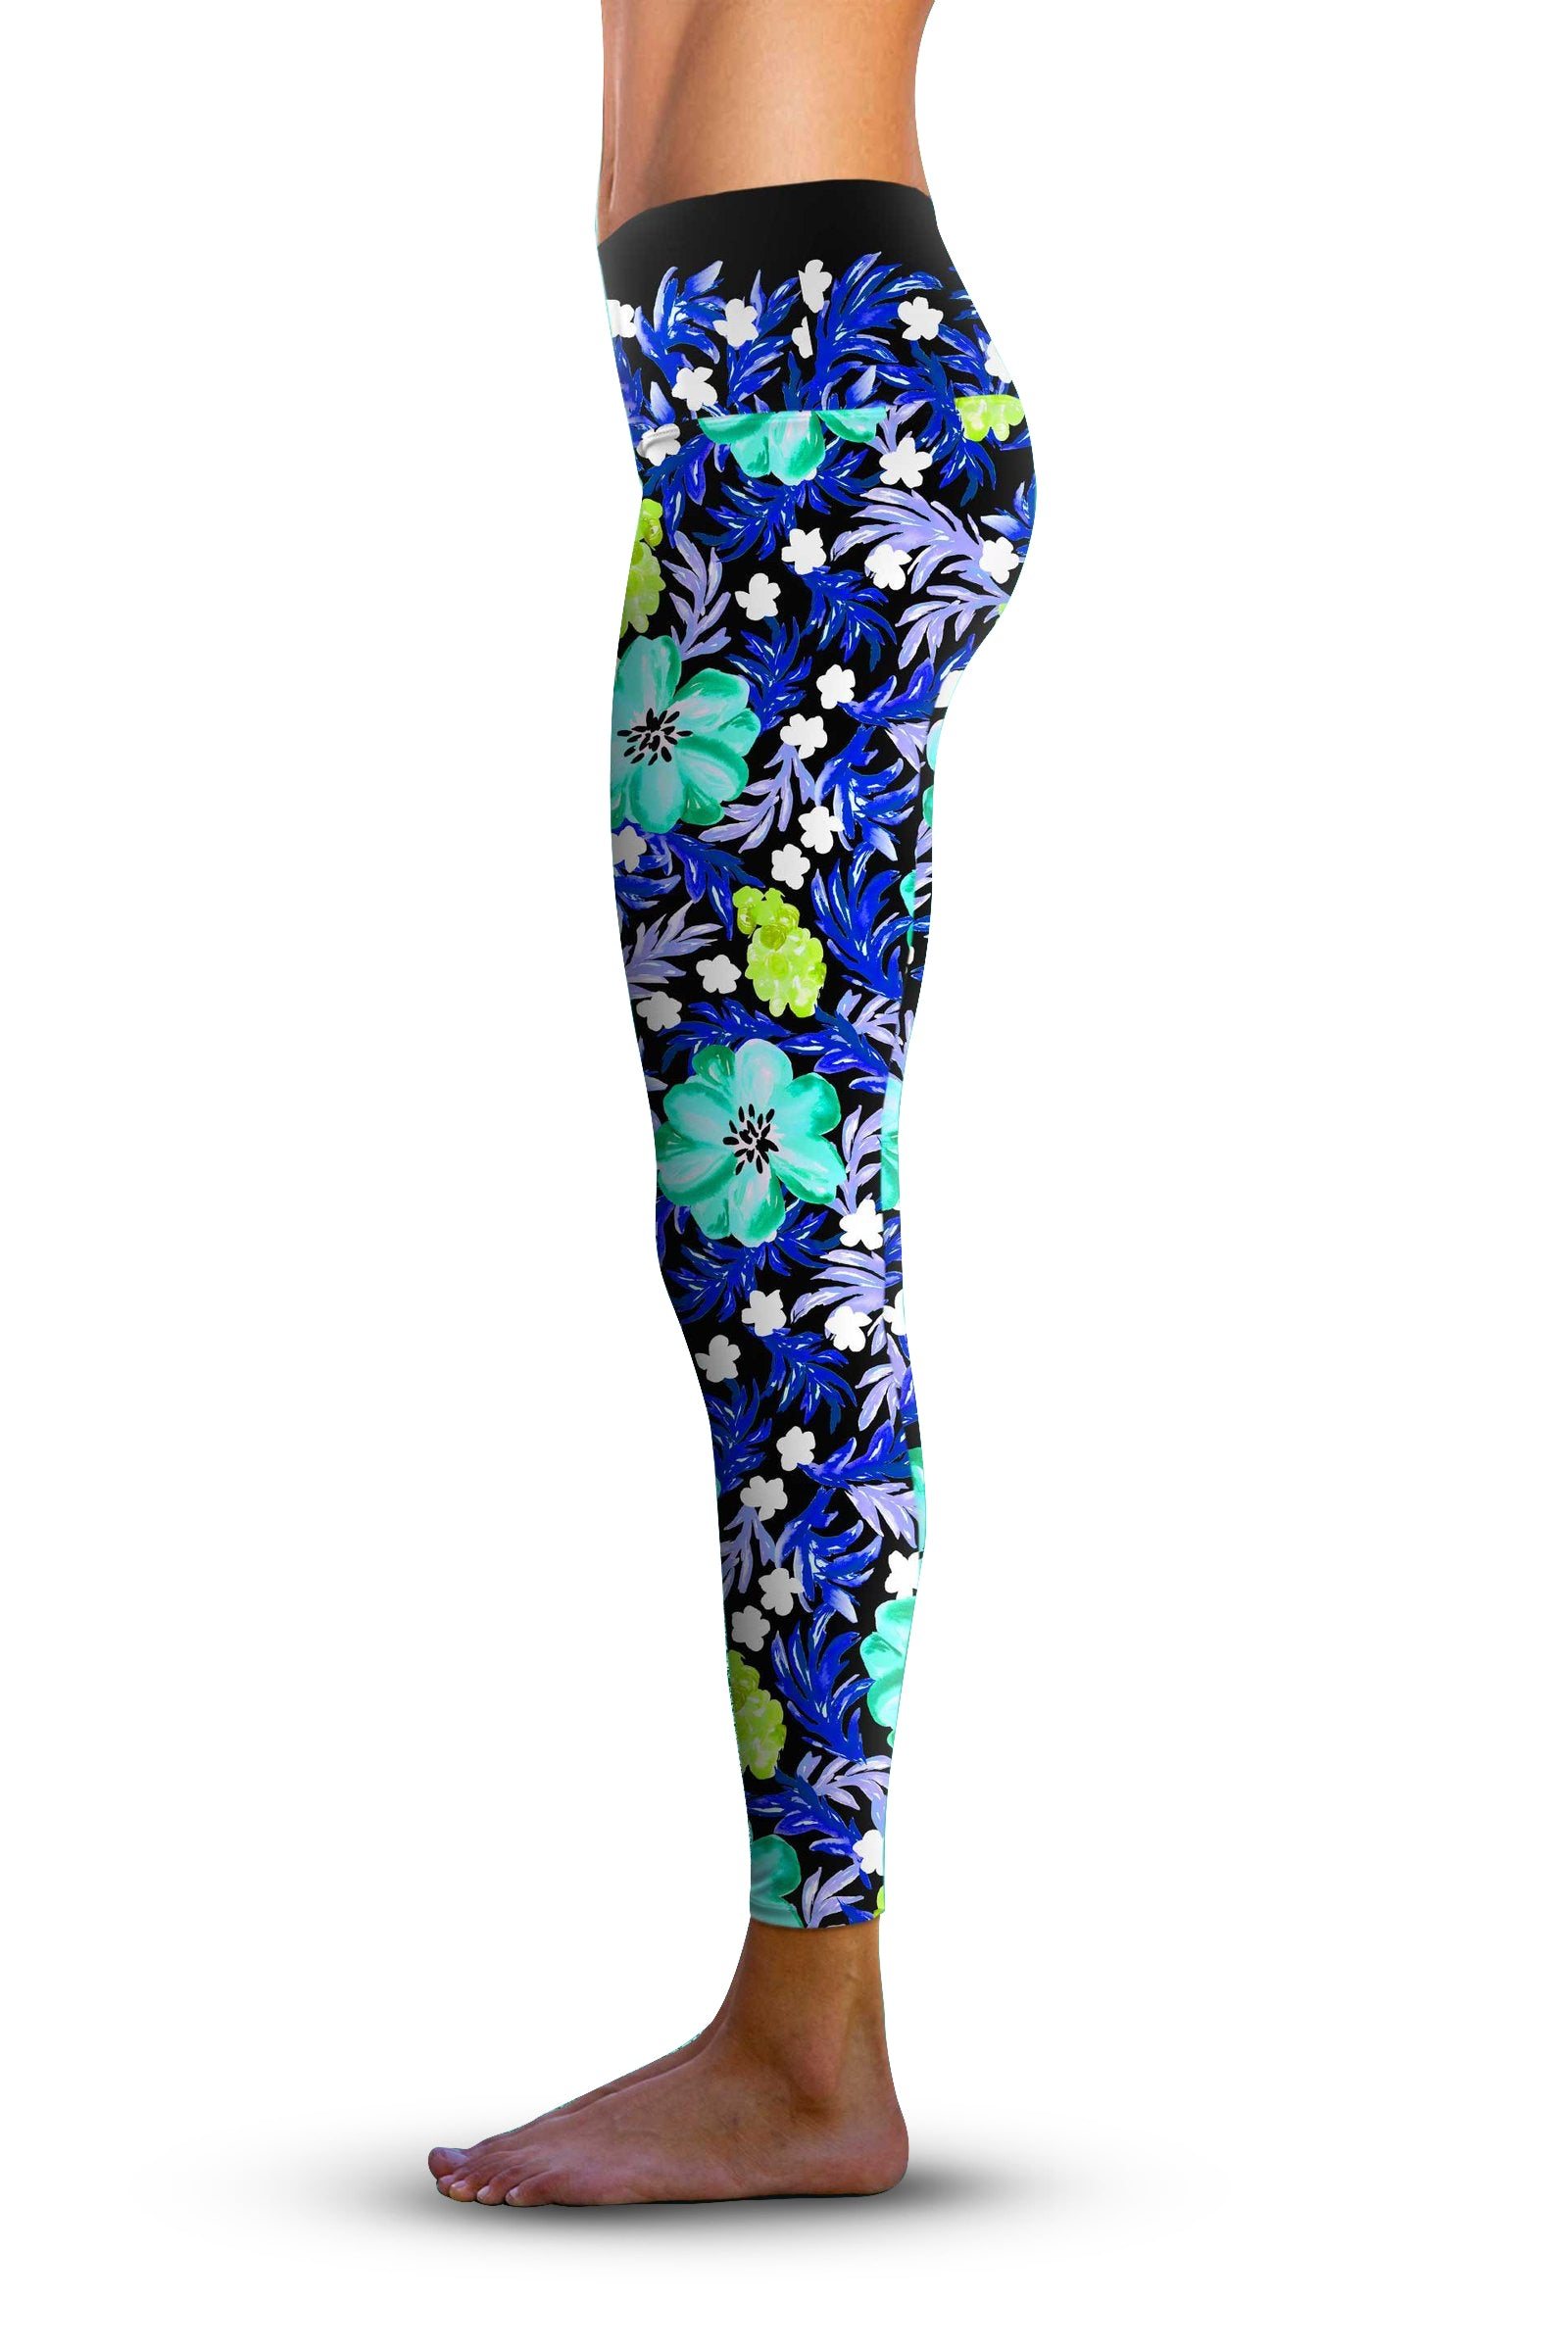 #Fabulous Blue Floral, Eco-Friendly Active Performance Leggings